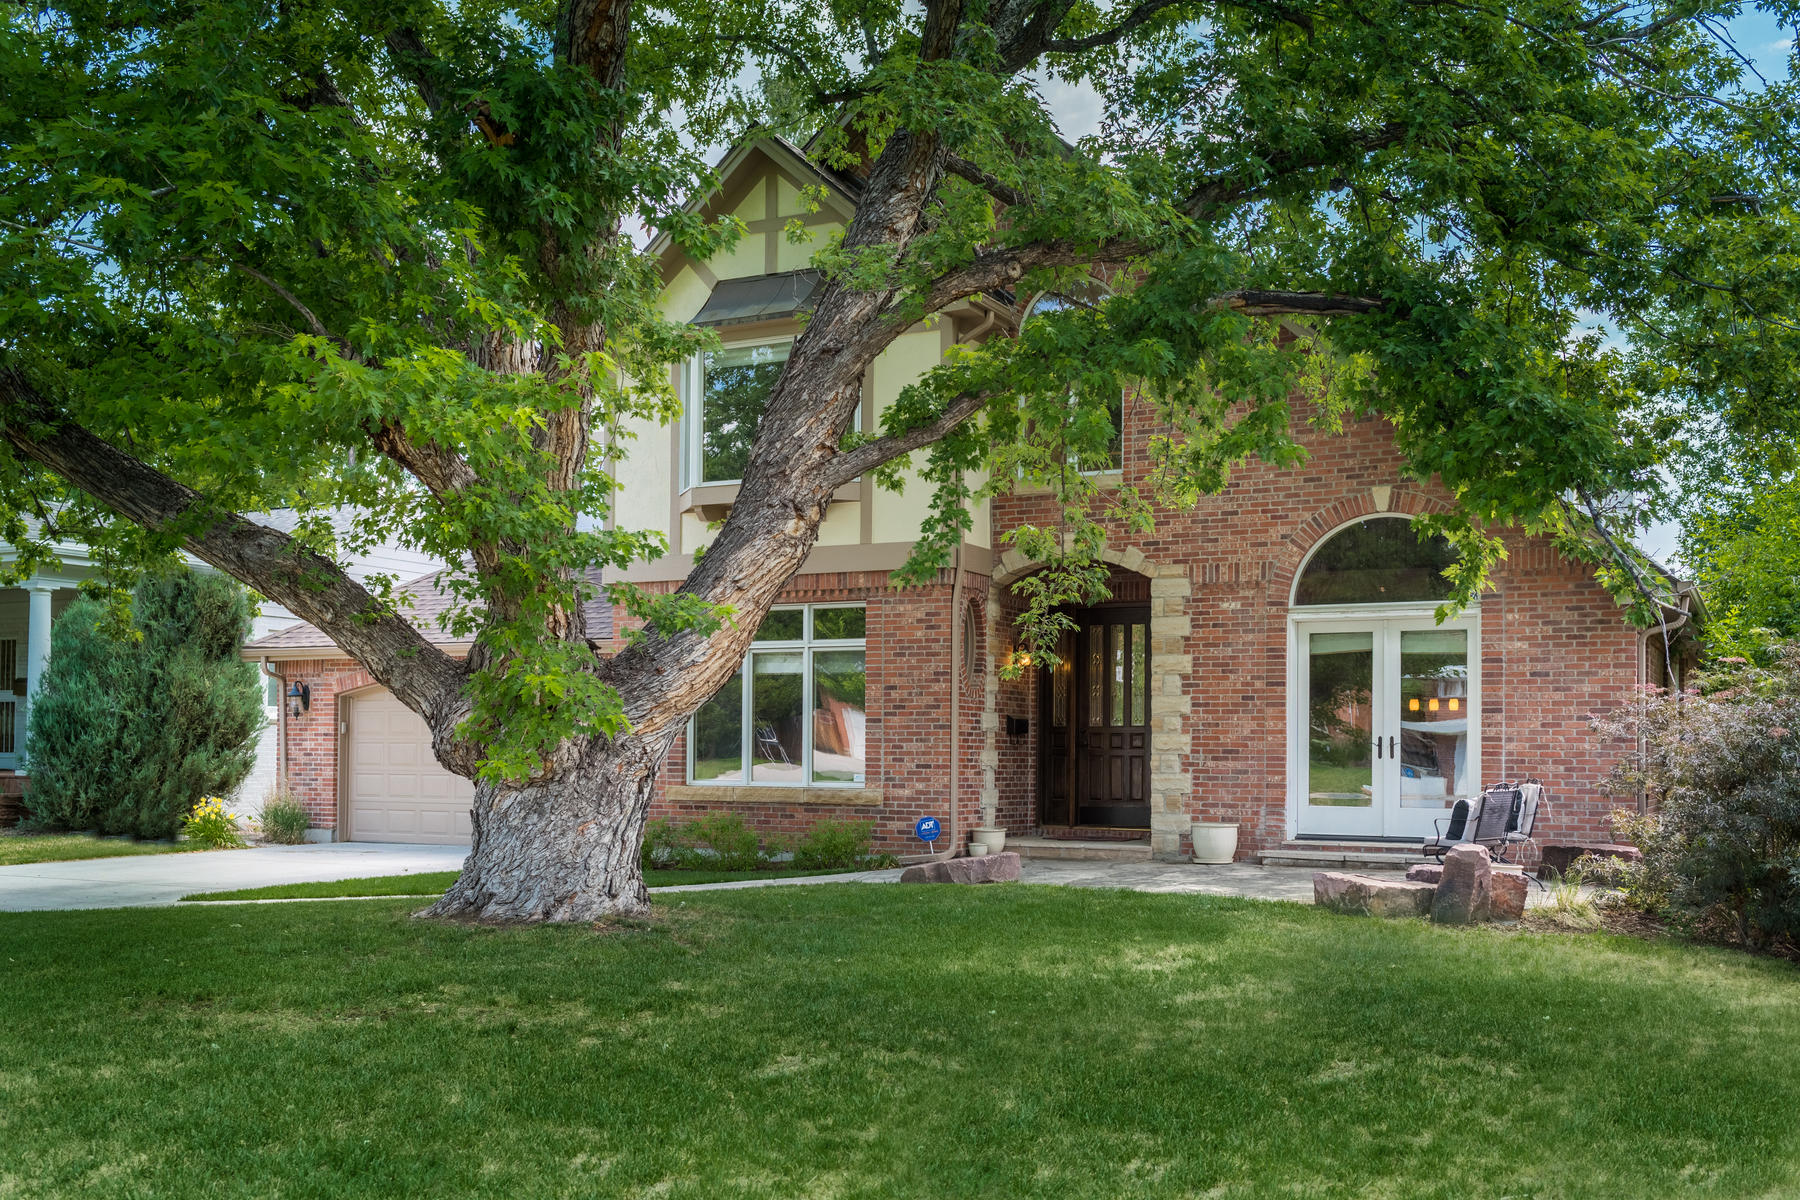 Single Family Home for Active at Luxurious Tudor In The Heart Of Hilltop! 130 Elm Street Denver, Colorado 80220 United States